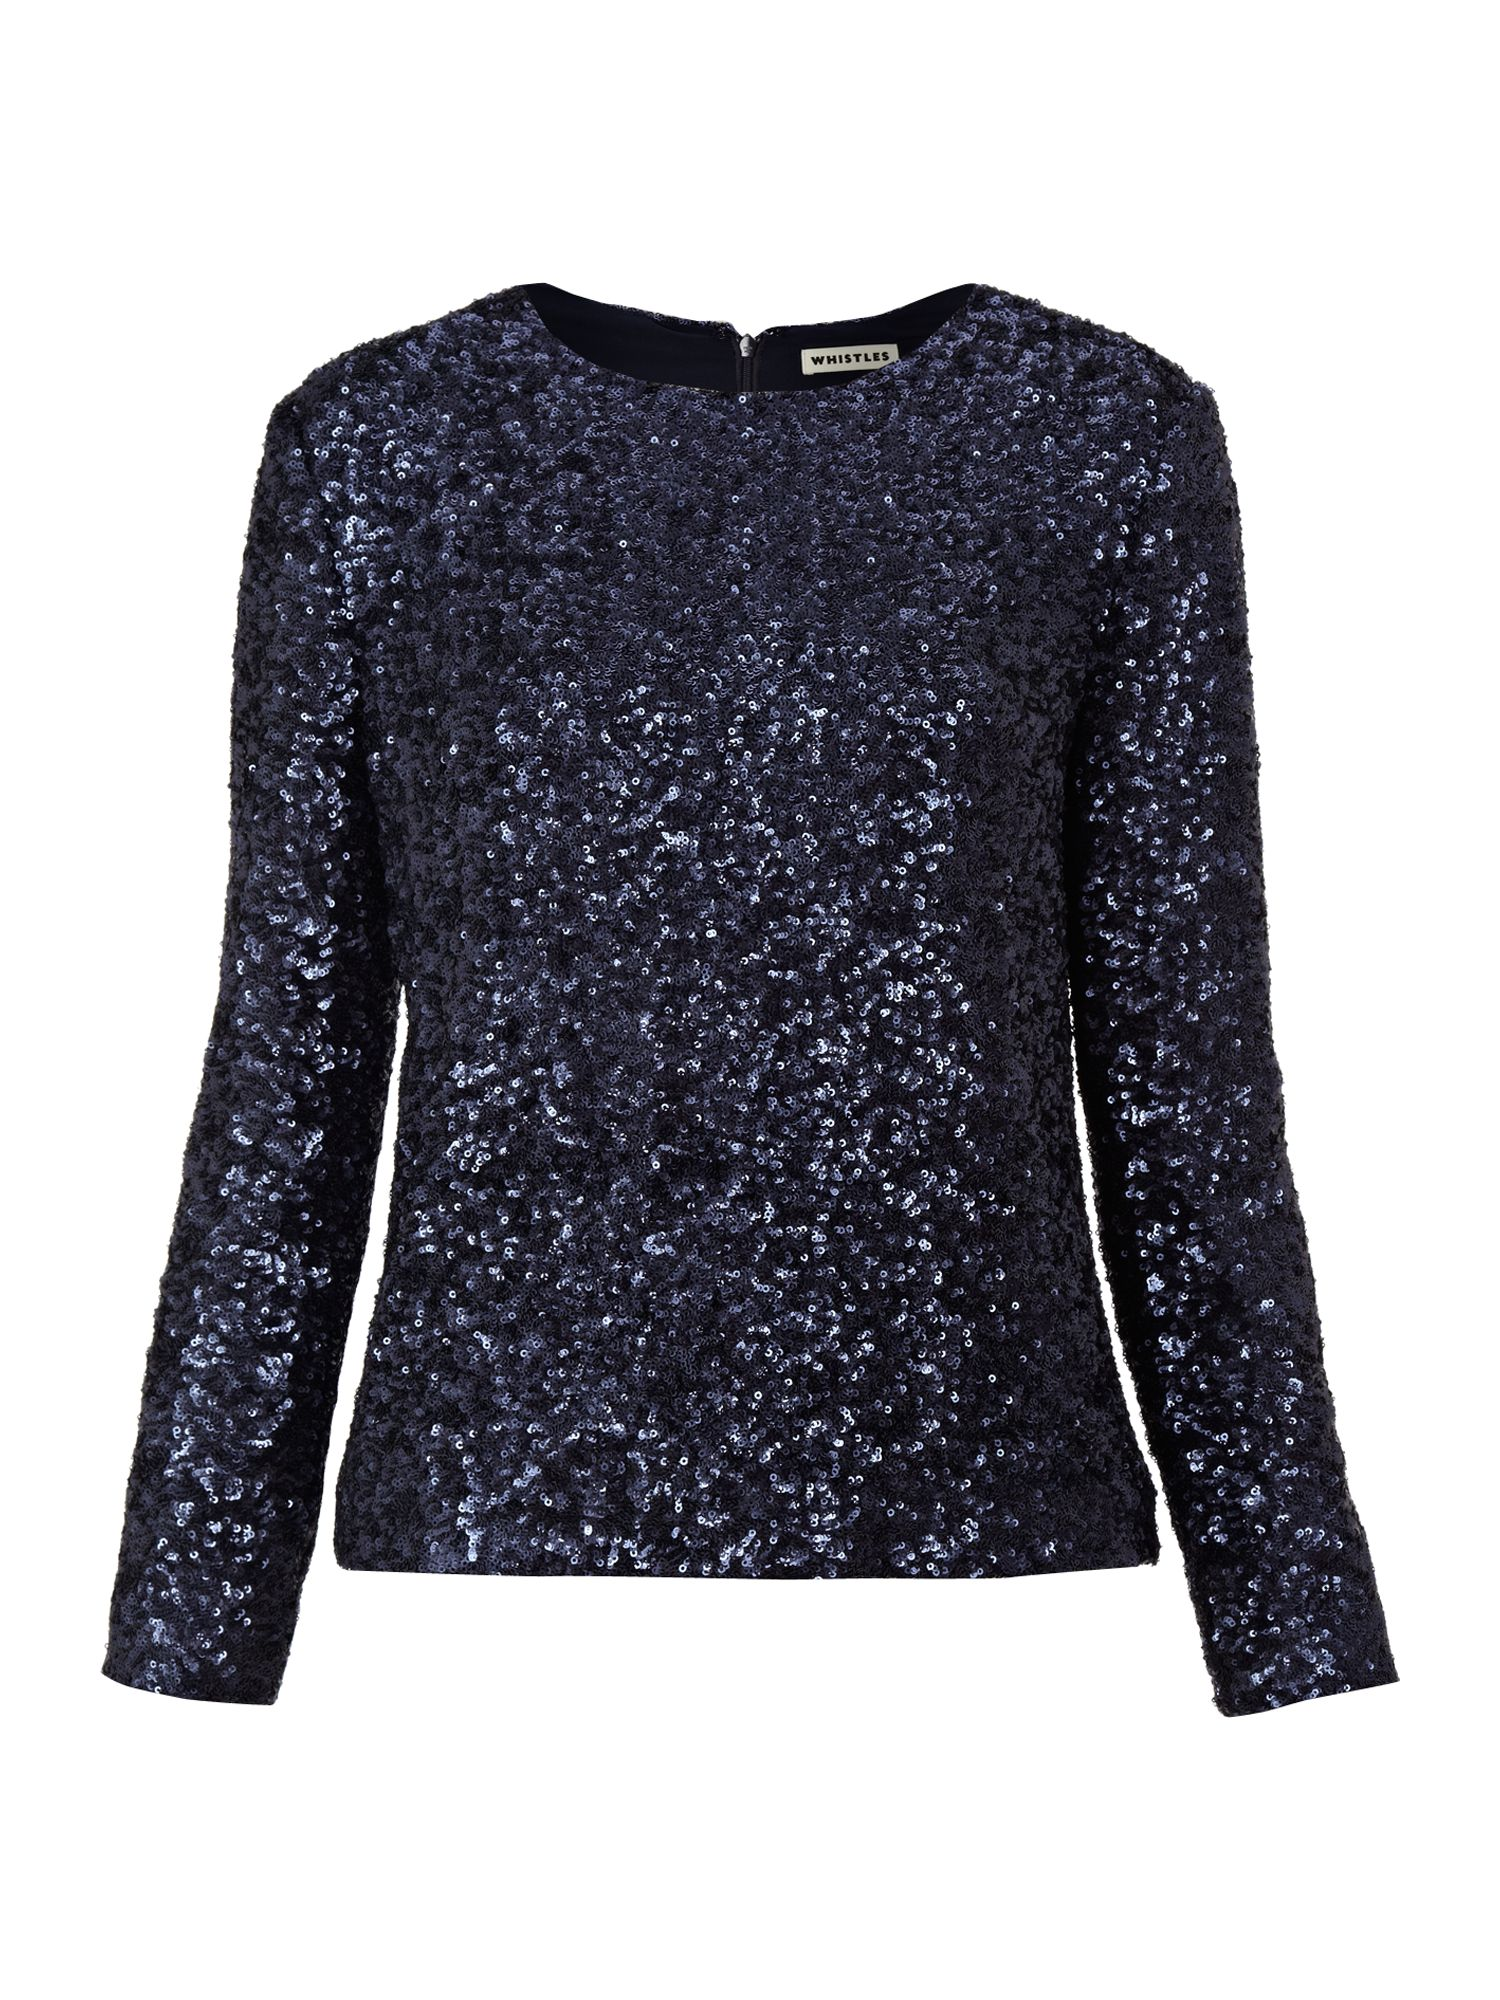 Whistles Delphine Sequin Top In Blue Navy Lyst